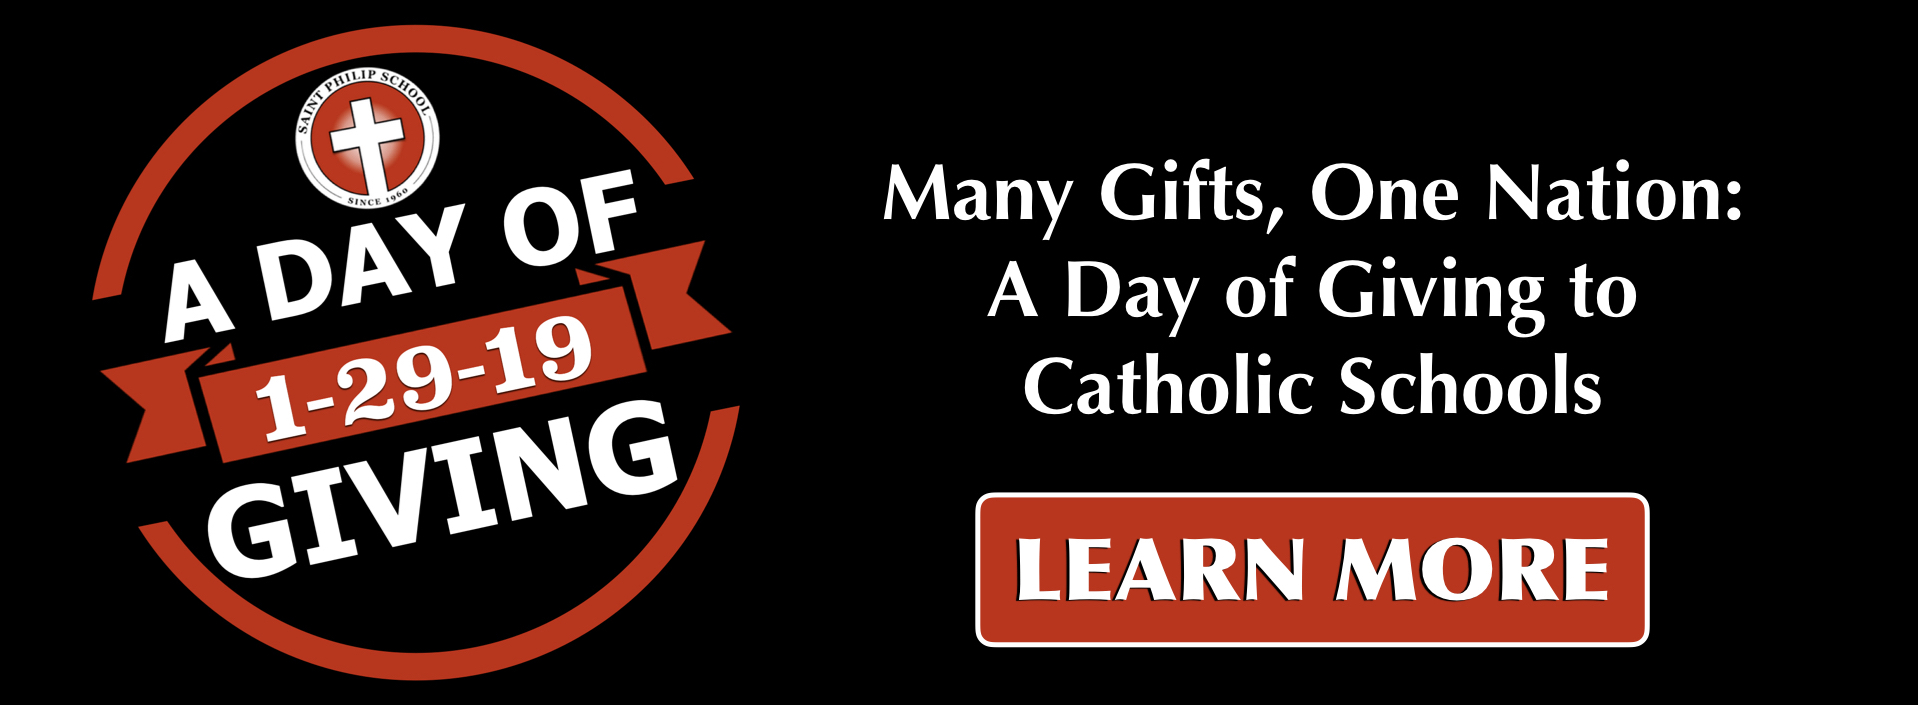 Day of Giving 1/29